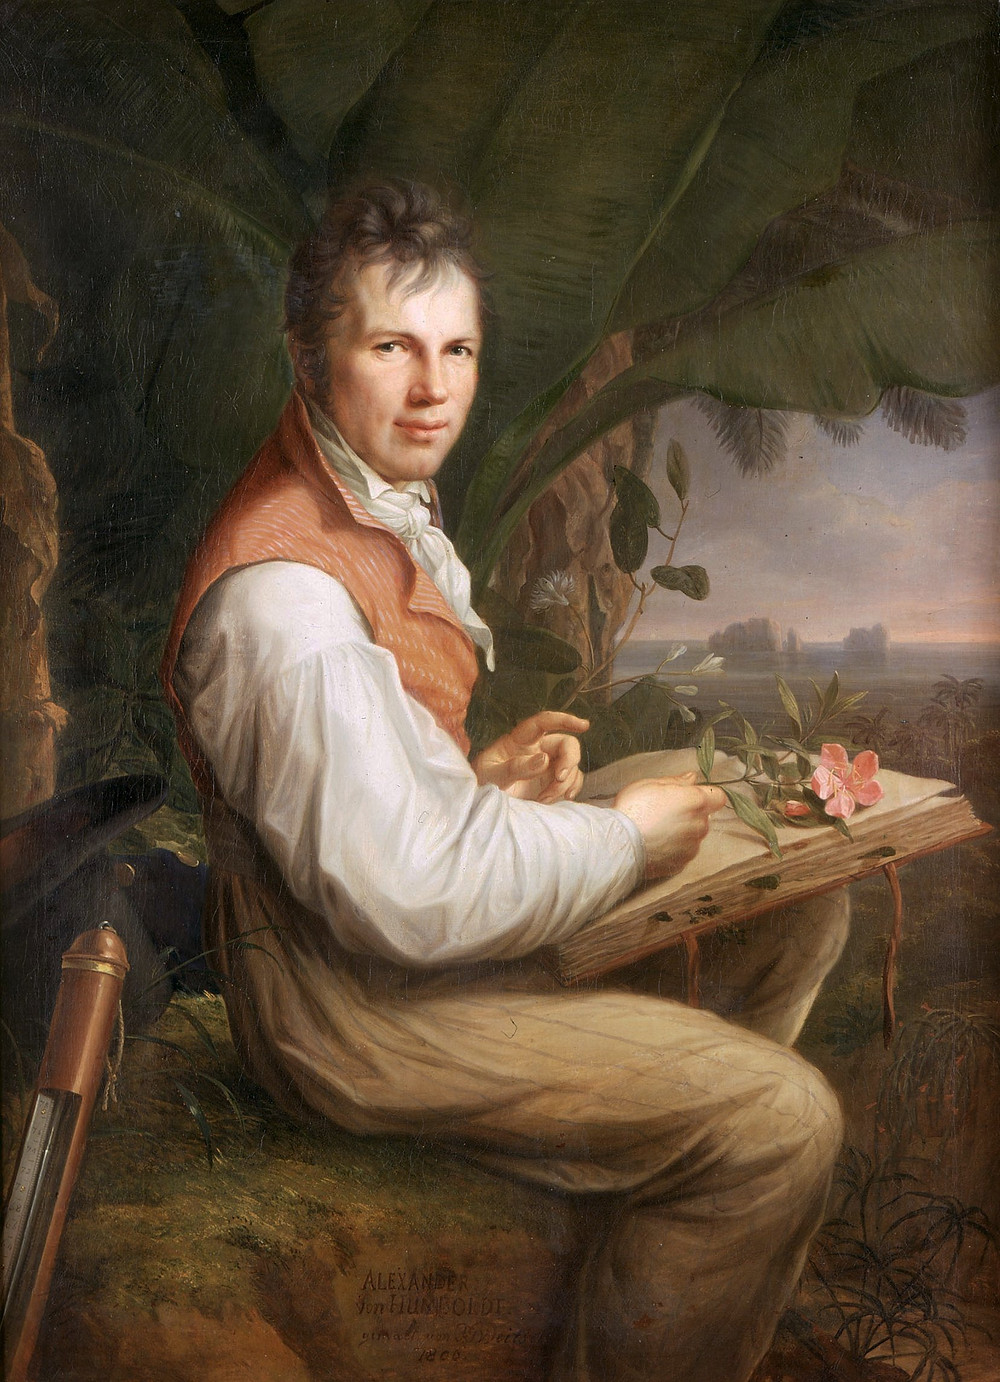 Humboldt in 1806, painting by Weitsch